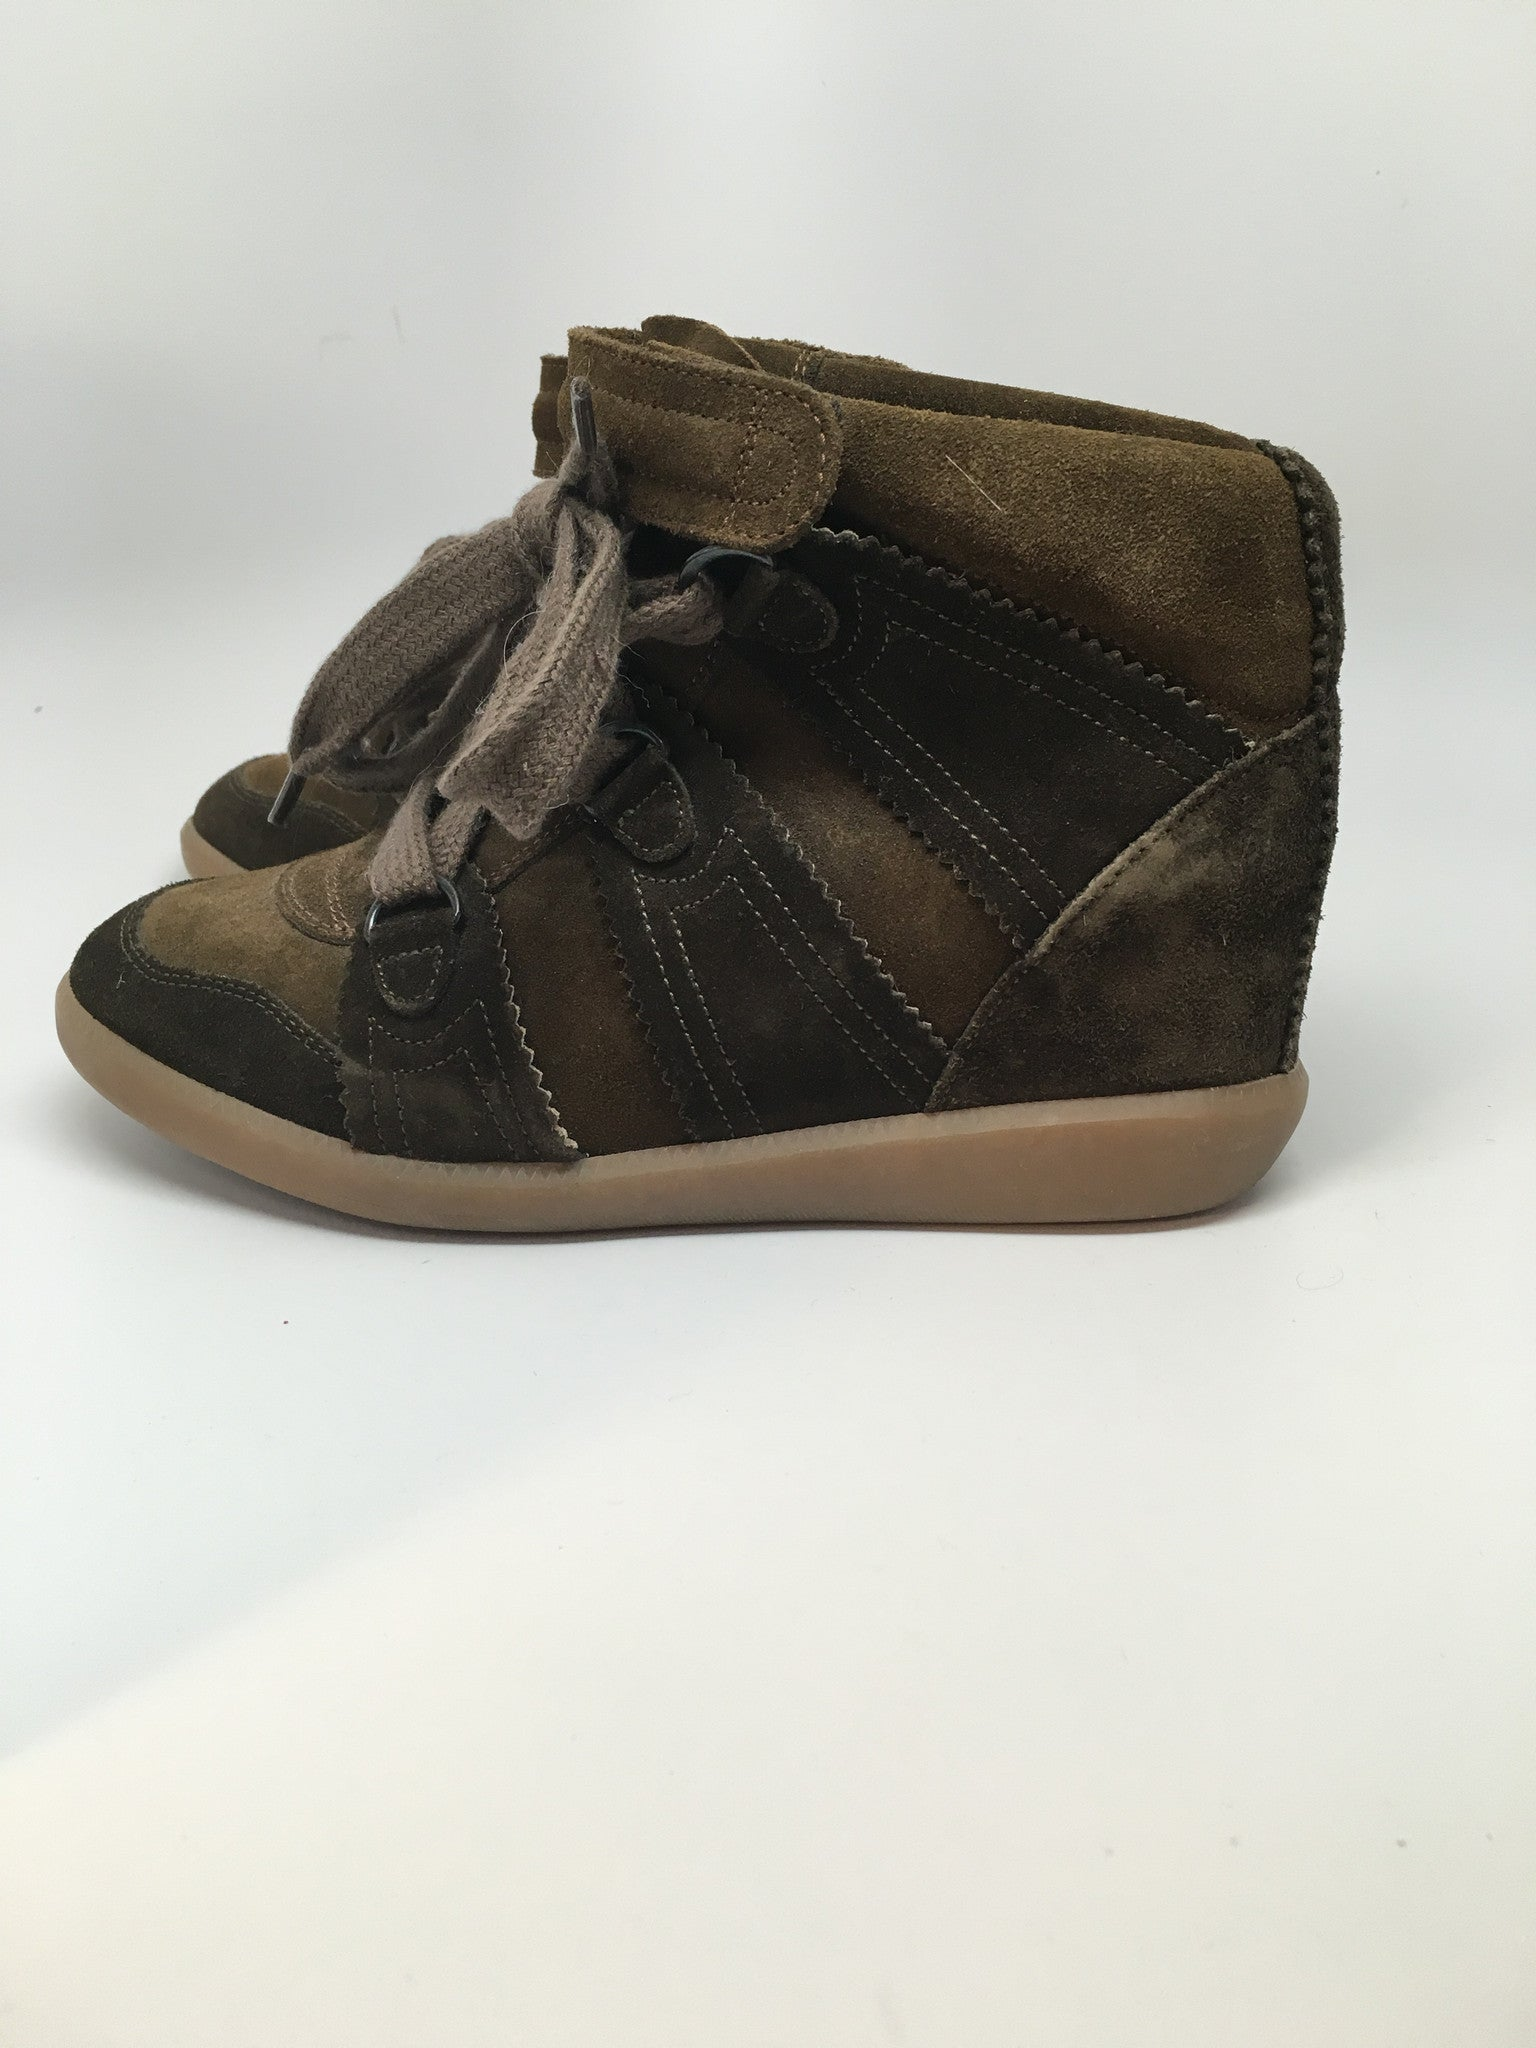 ISABEL MARANT BOBBY WEDGE SNEAKERS - BROWN - SIZE 37